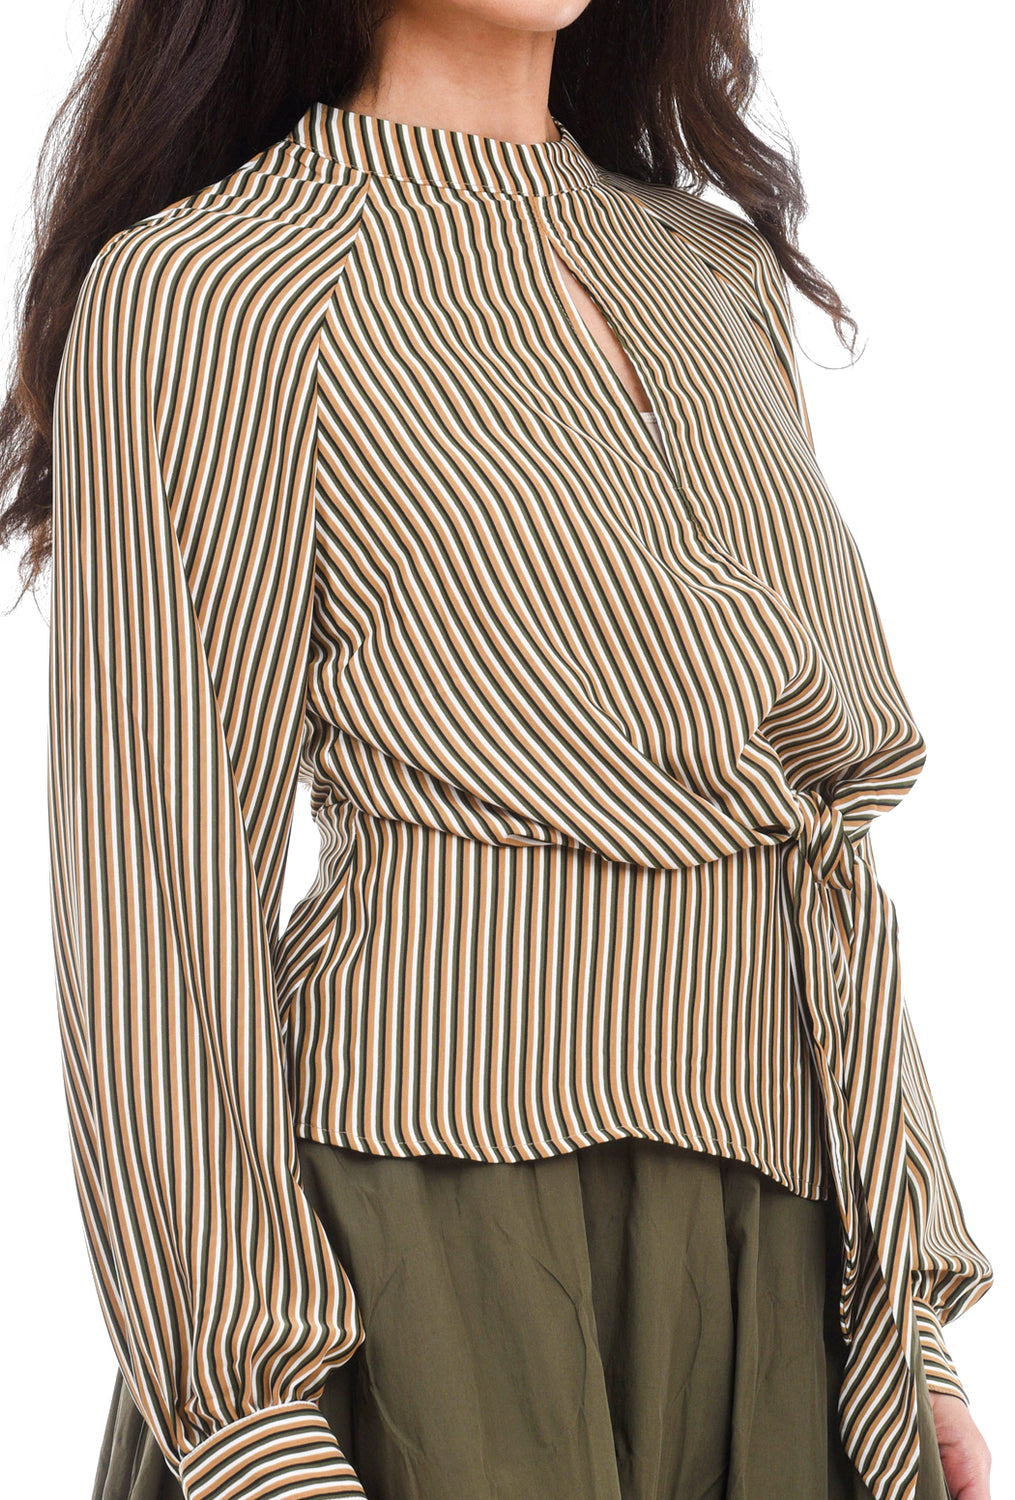 Current Air Striped Tie-Waist Blouse, Olive